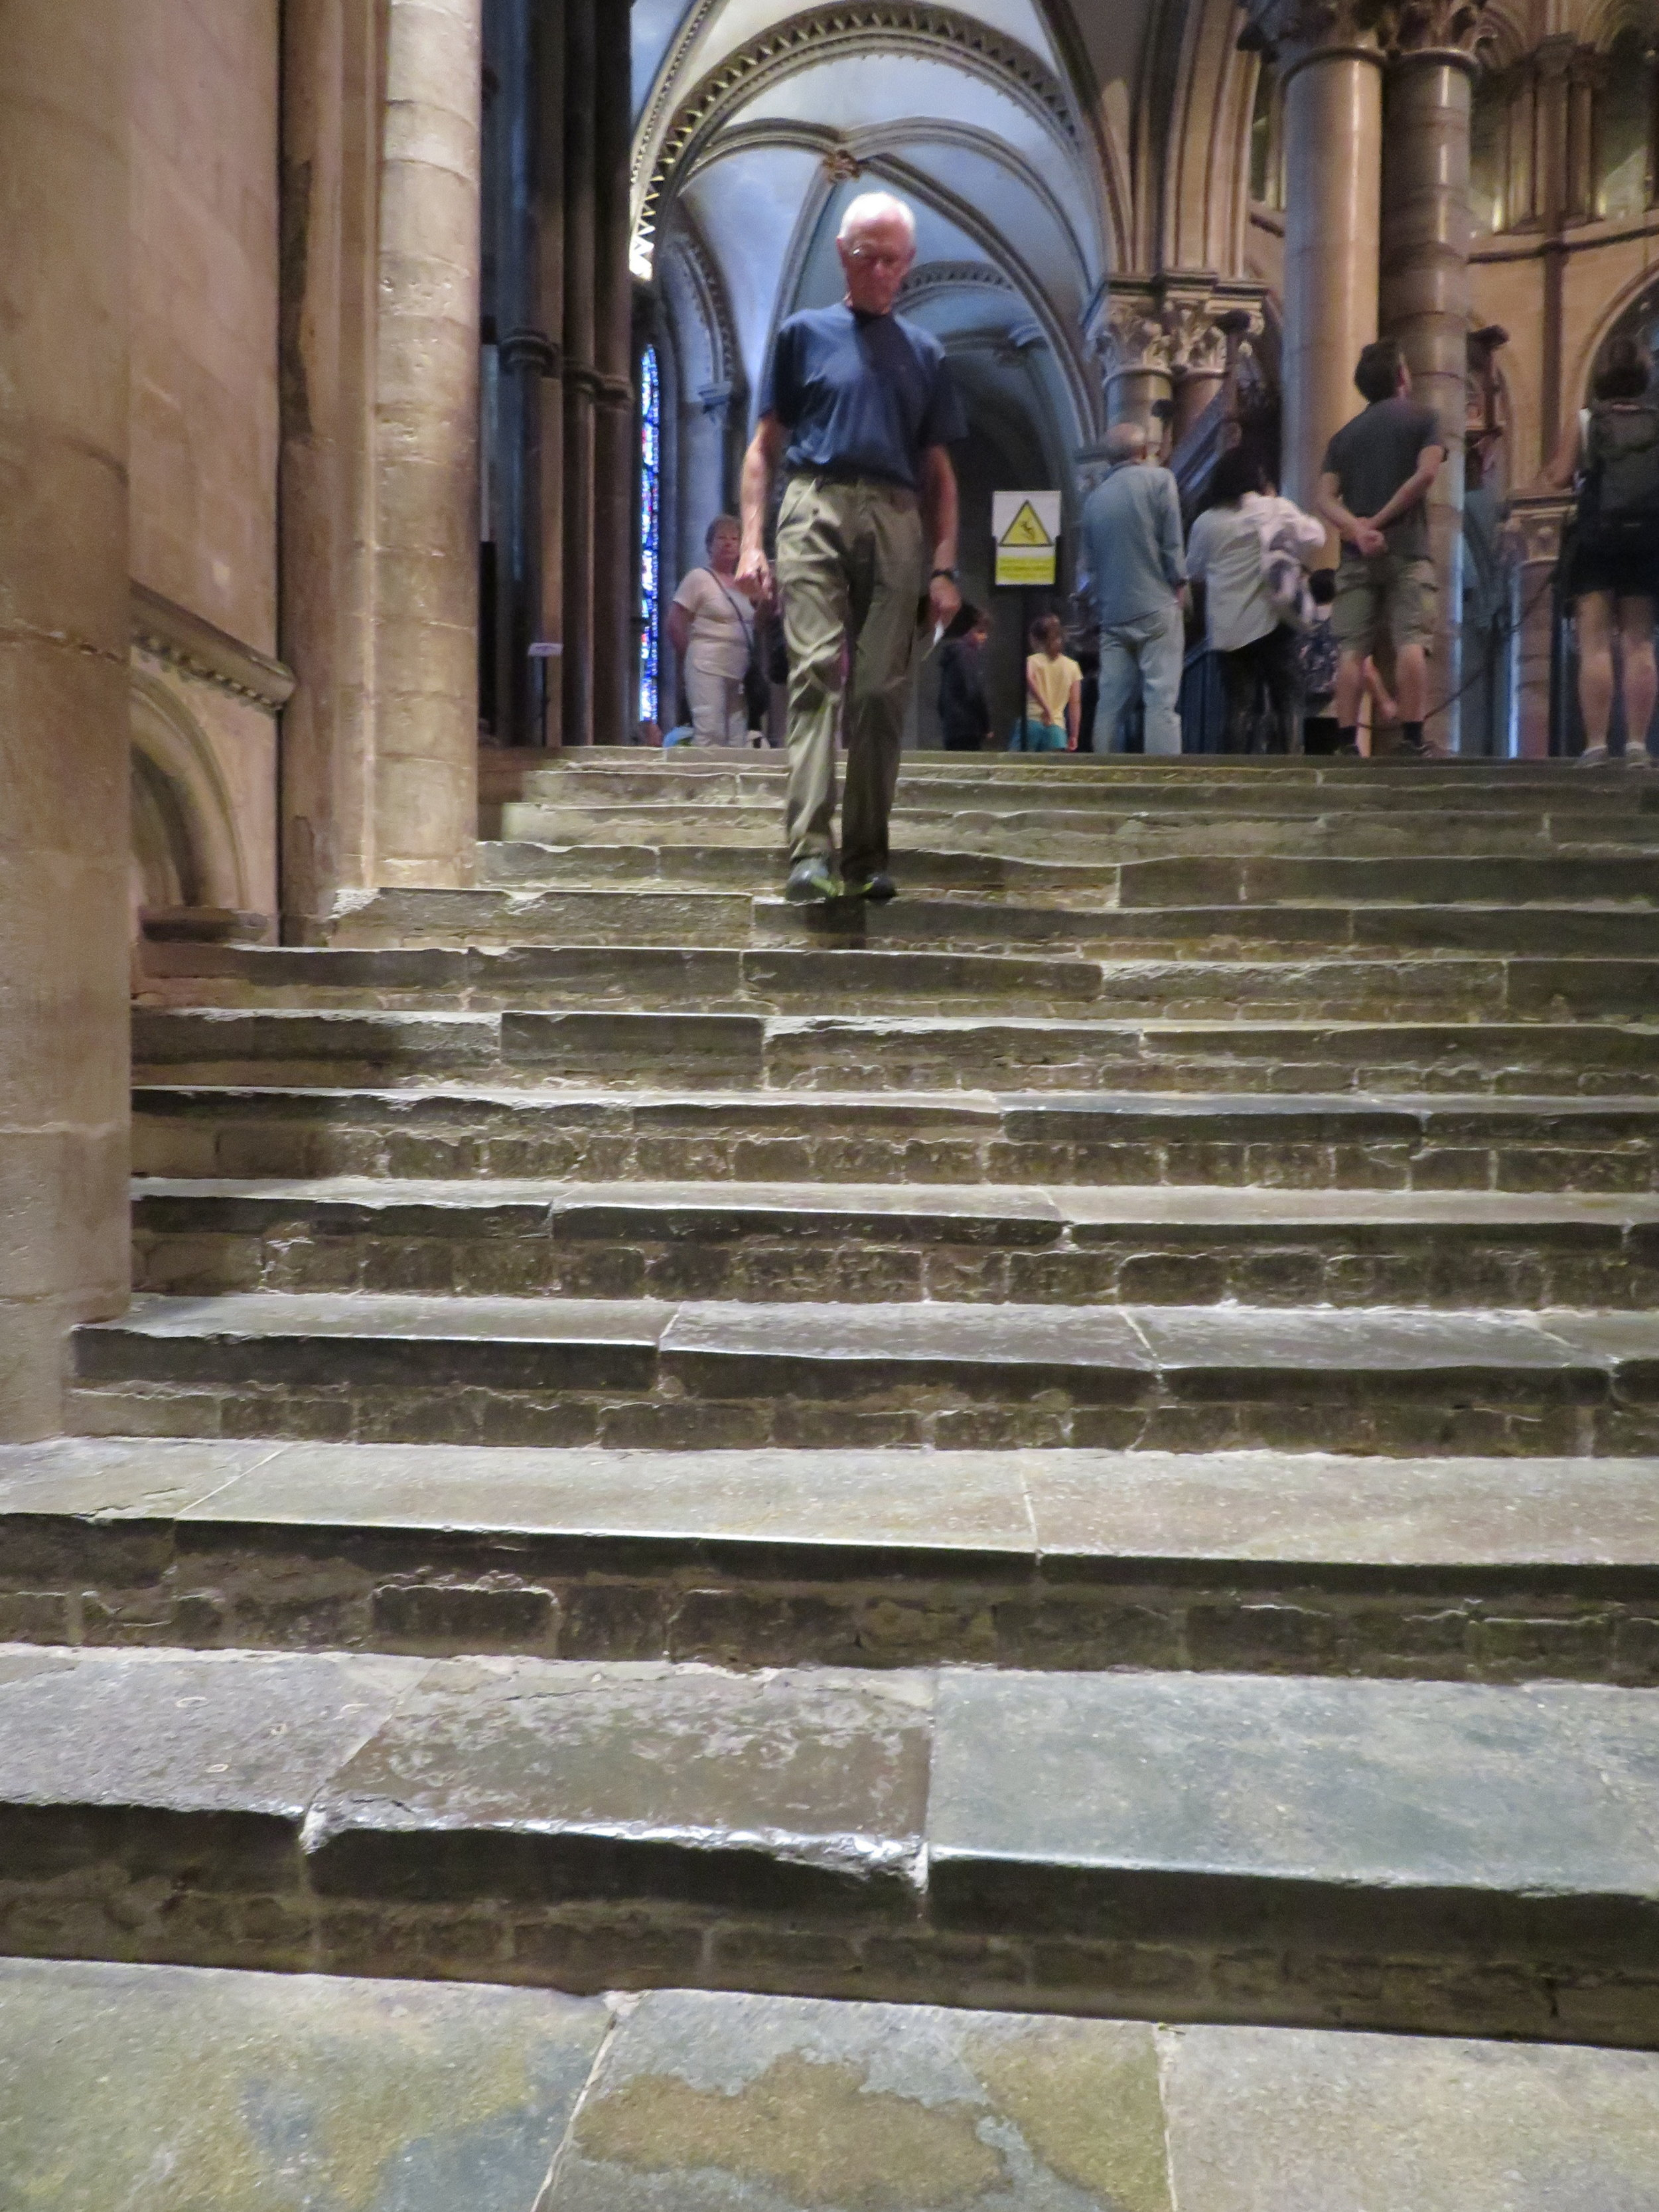 It was the cathedral steps that intrigued me. Stone steps worn smooth with the footsteps of thousands, maybe millions, in centuries past. You could feel it as you trod upon them.